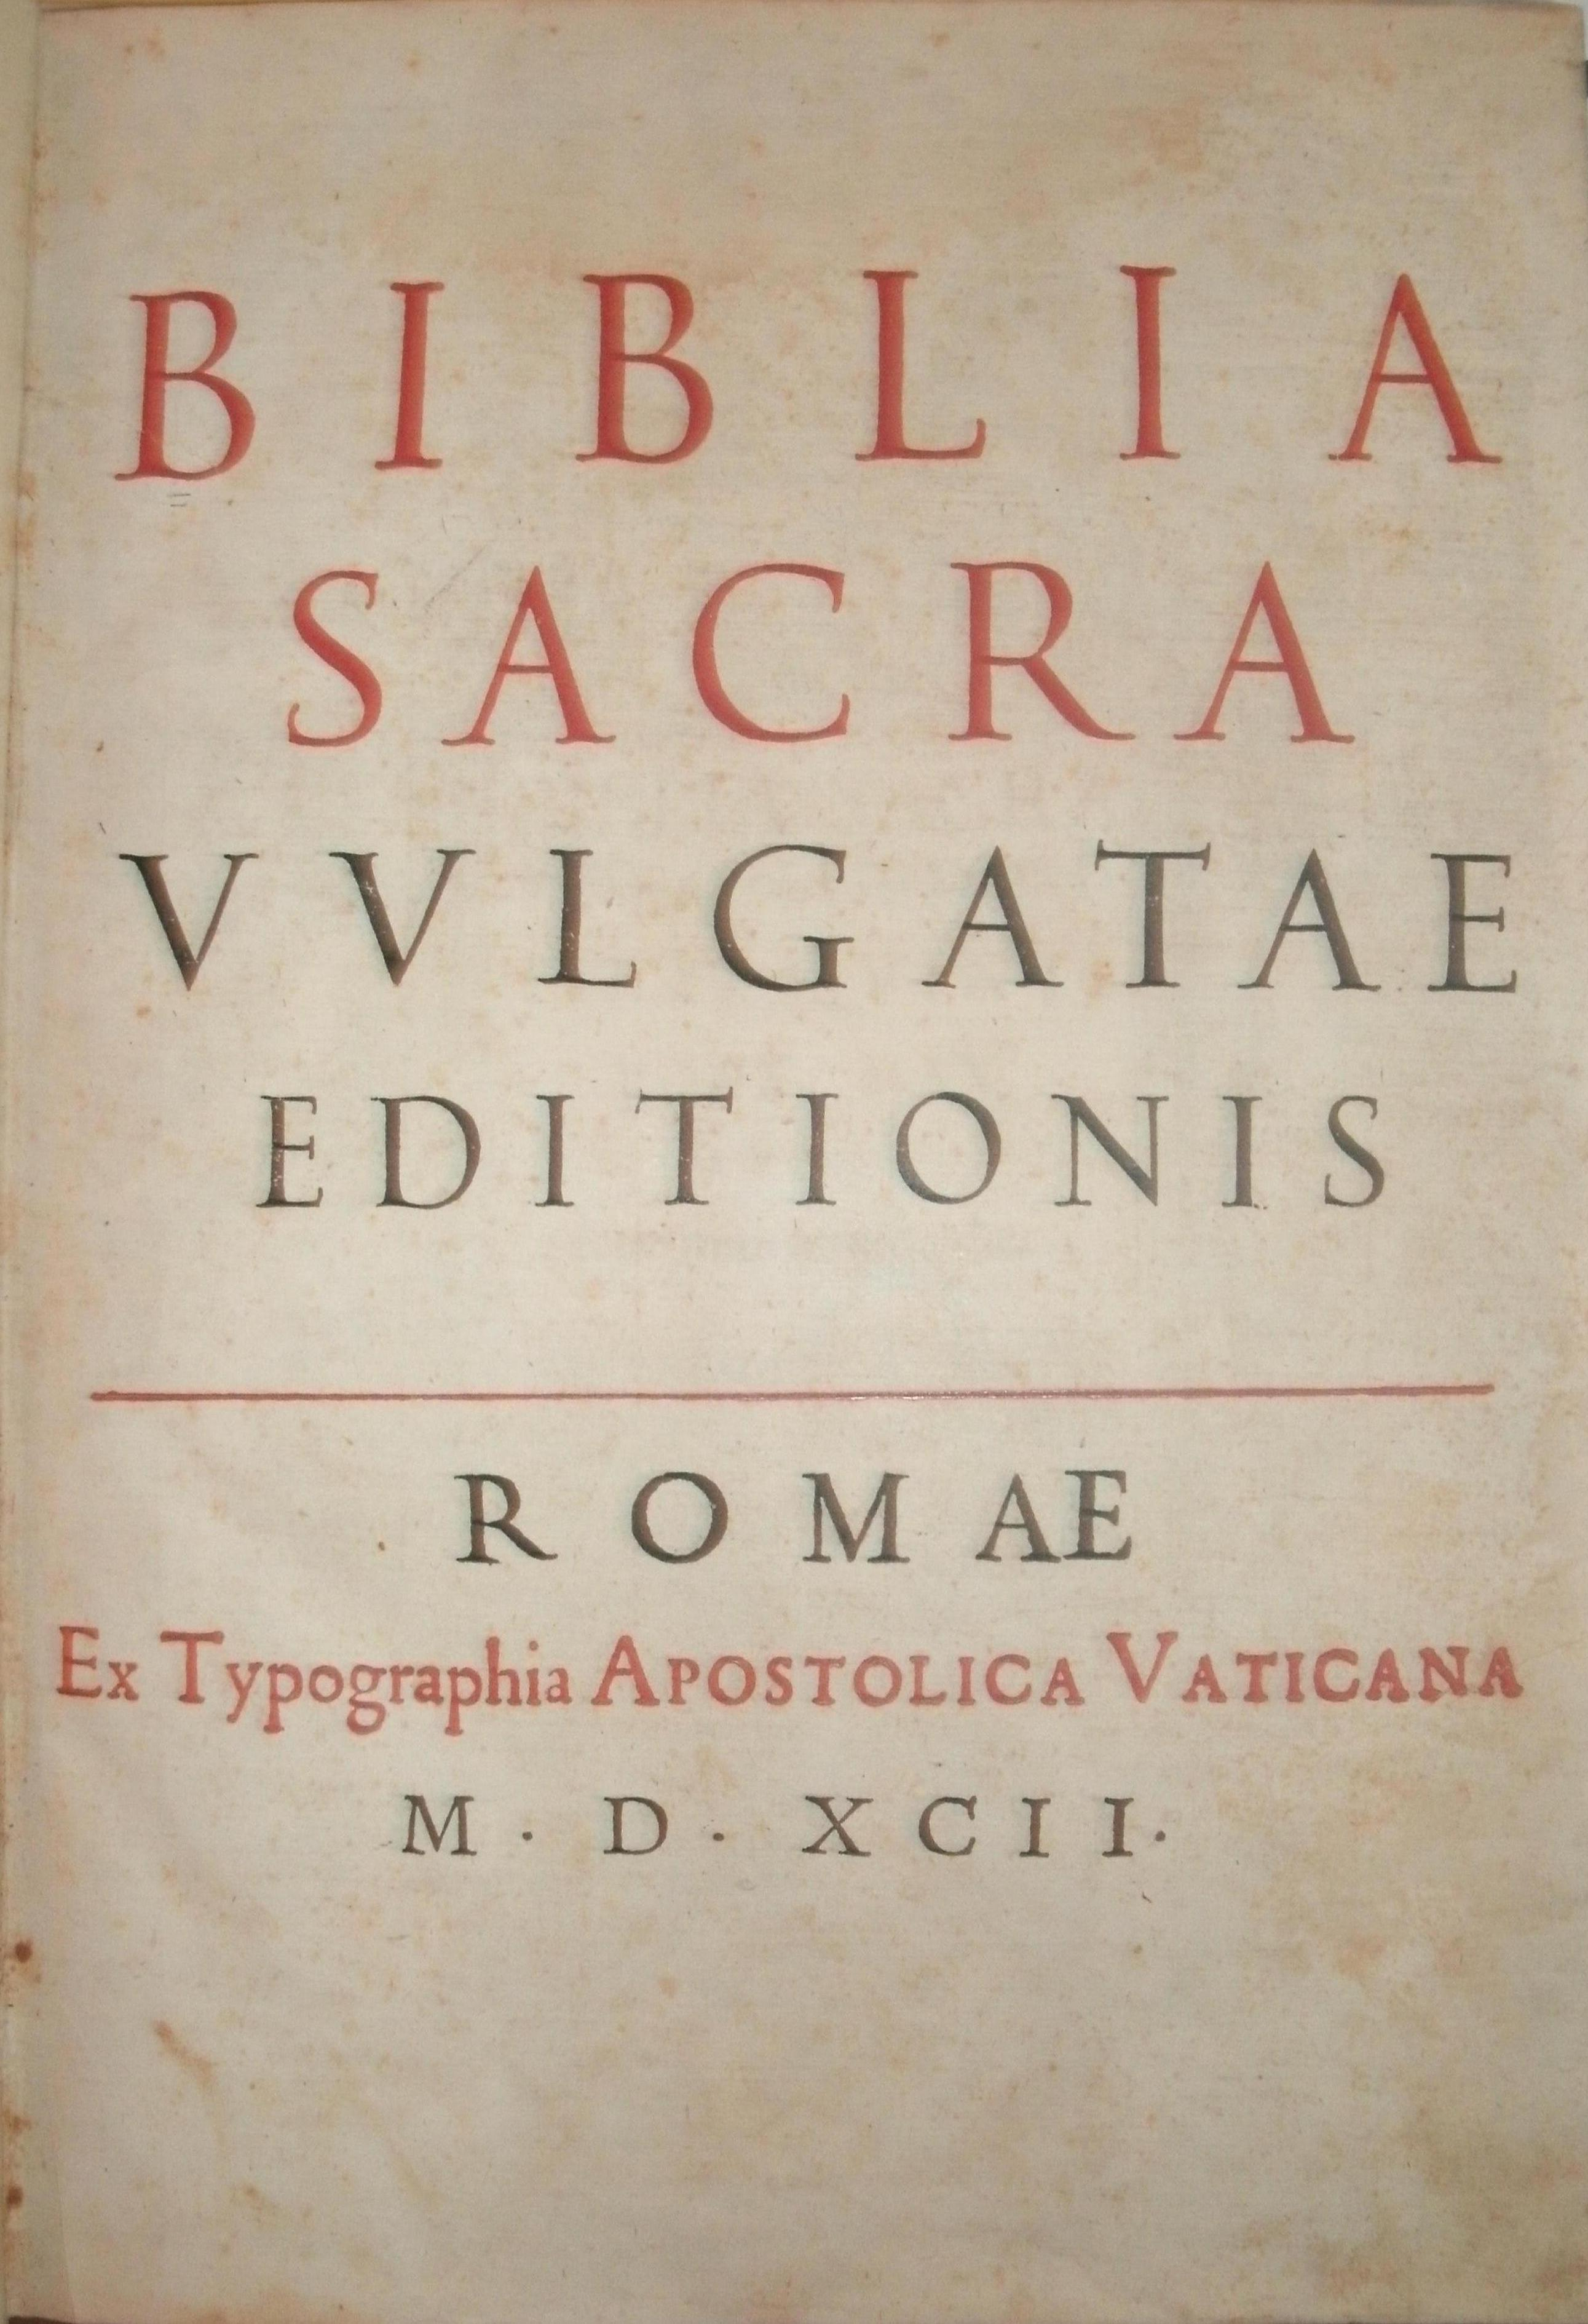 SACRA VULGATE EBOOK DOWNLOAD